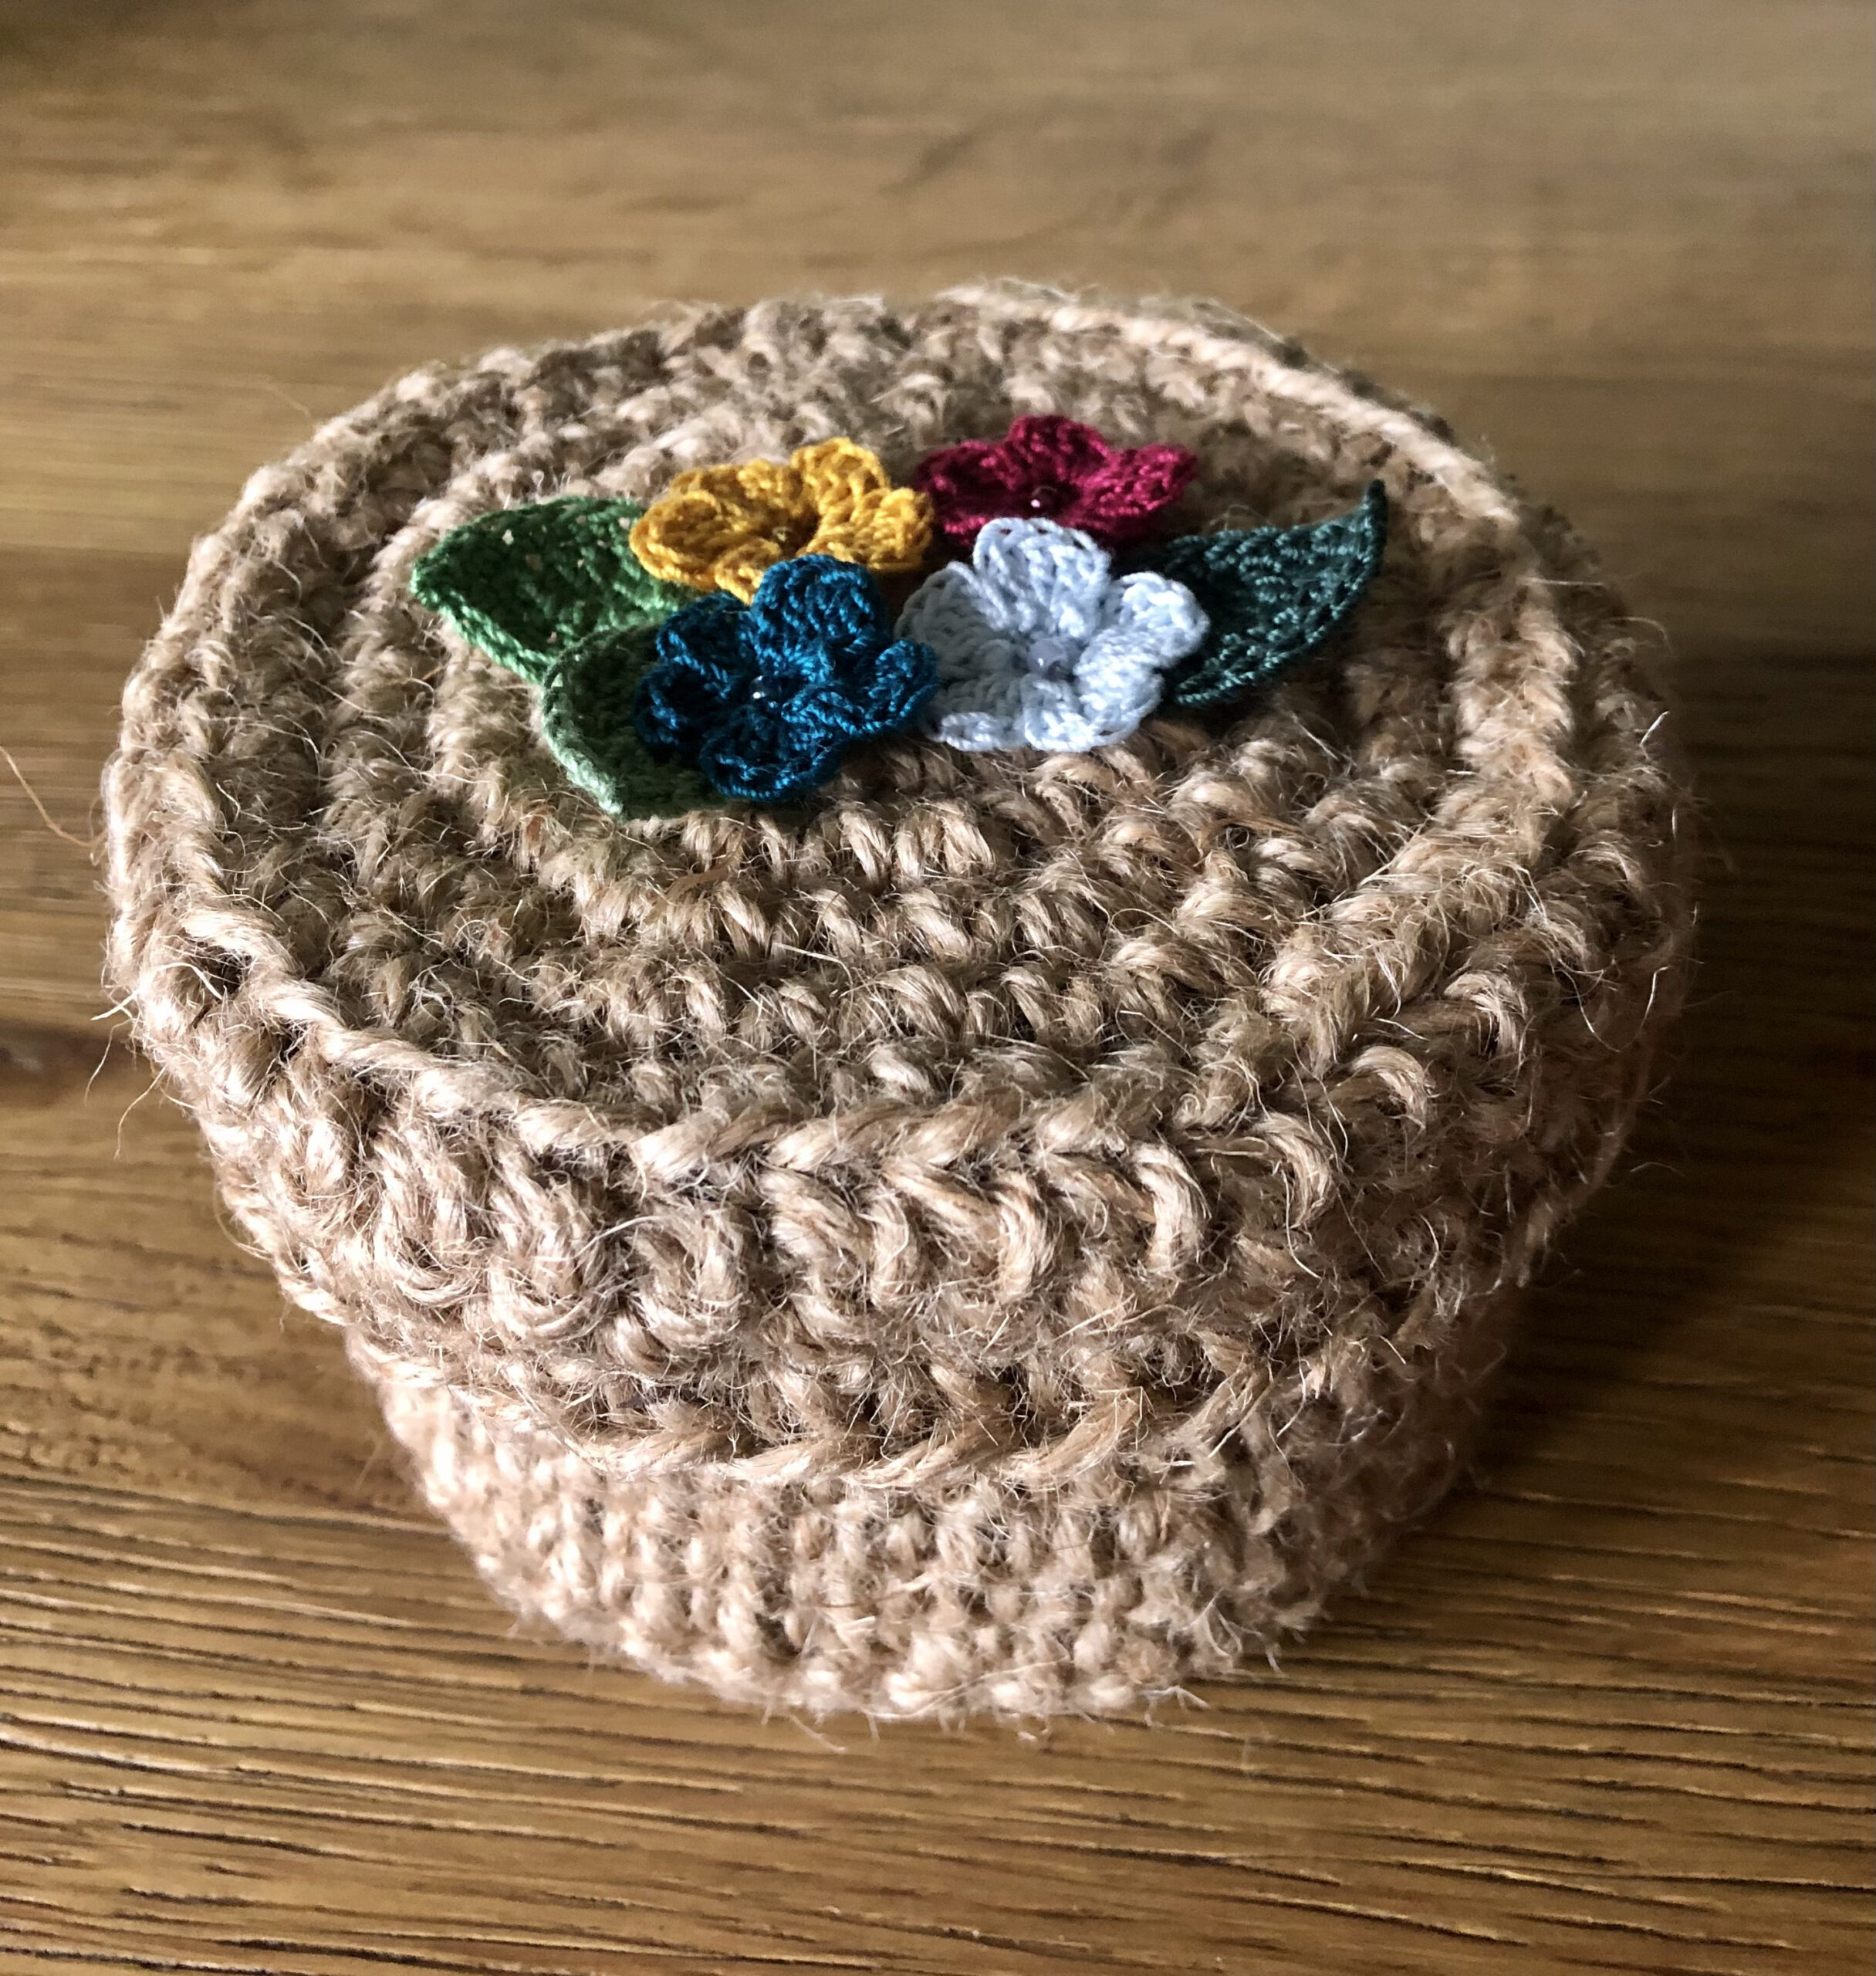 A handmade, crocheted 100% jute basket with lid. Decorated with 100% cotton crocheted flowers and leaves. Approximate size 7.5cm Height x 11.5cm width.